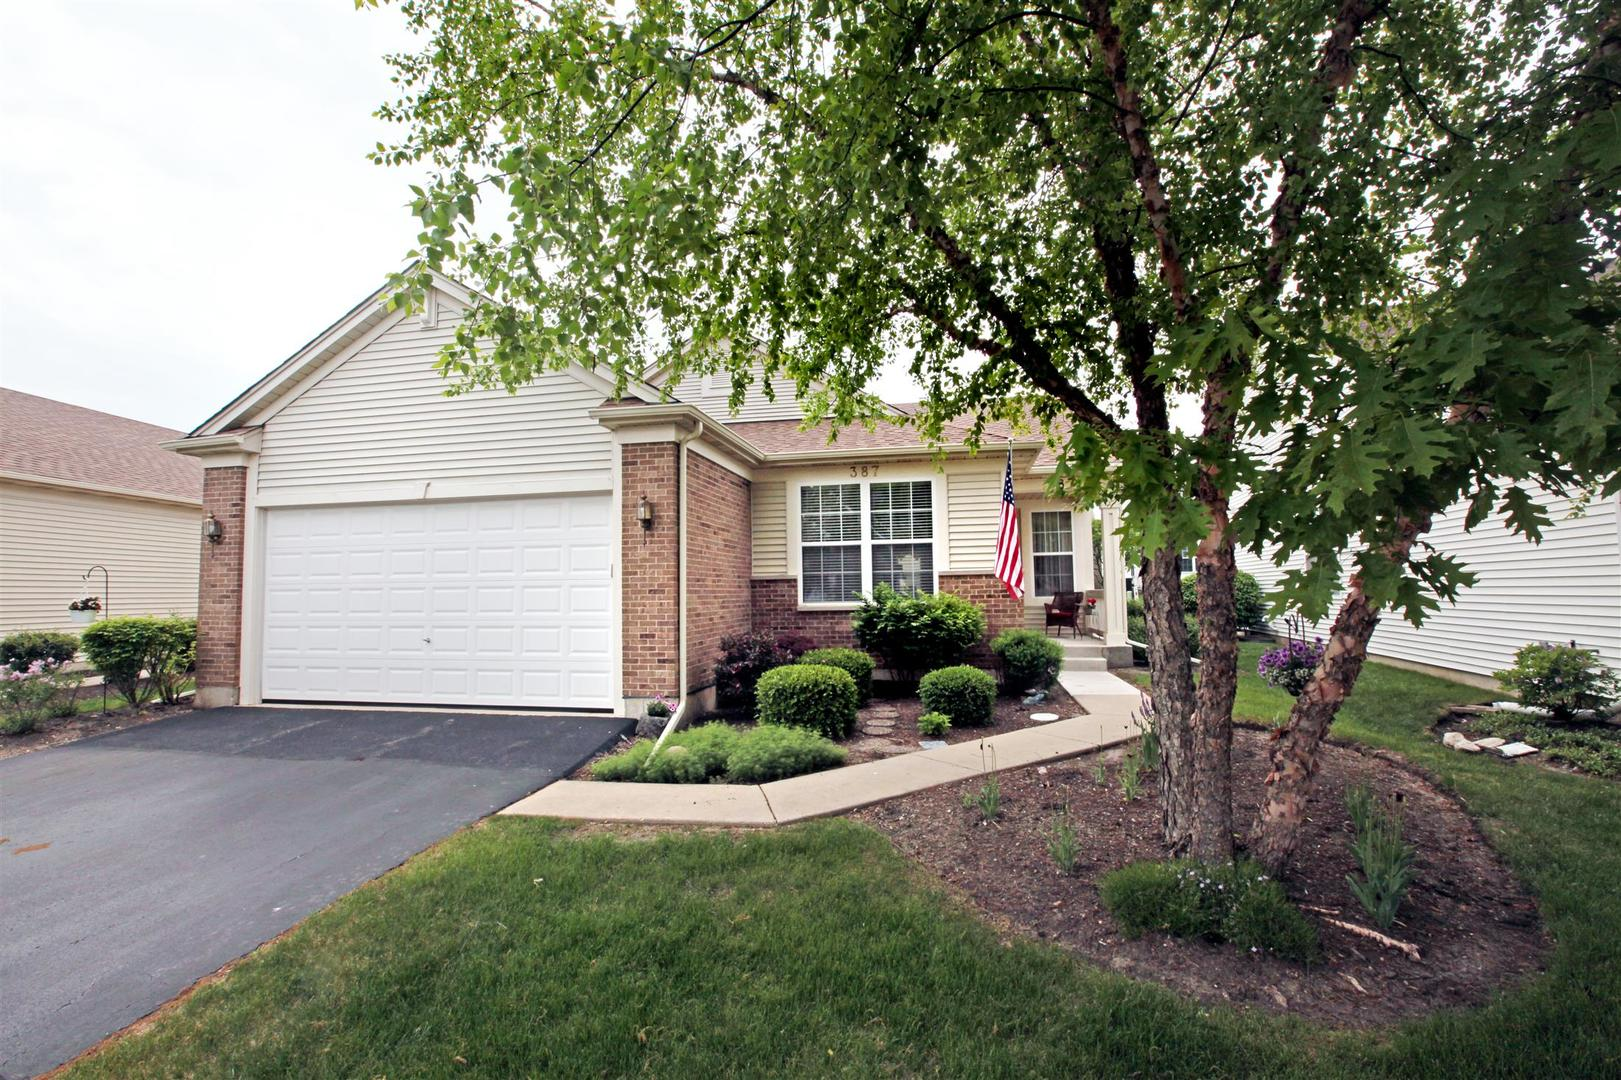 387 Longfield Lane, Grayslake, Illinois 60030